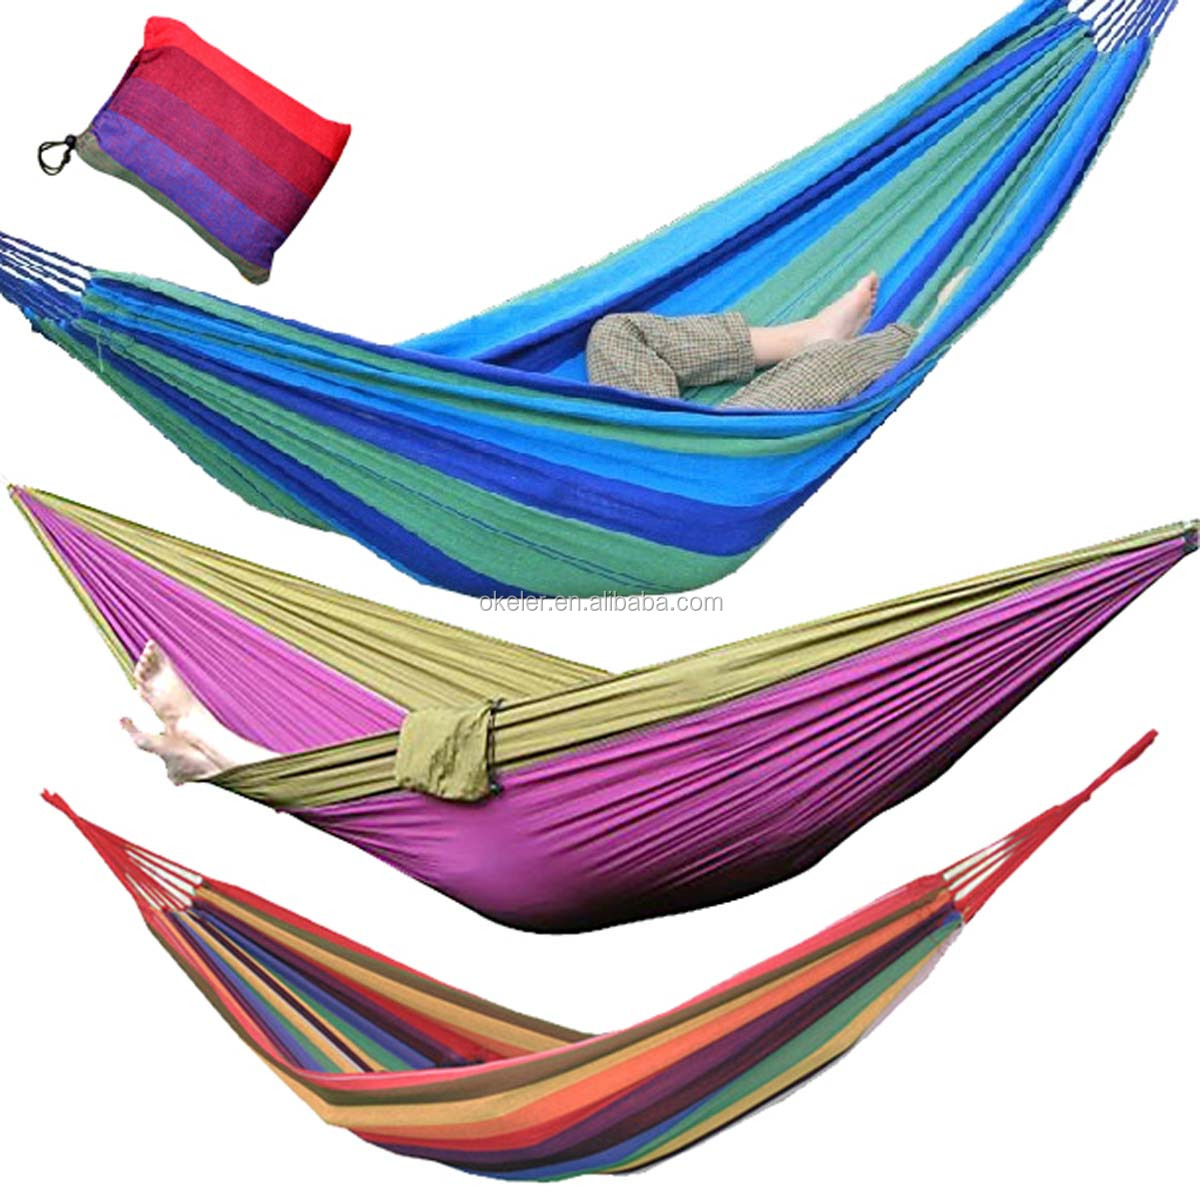 Best Sale 1 Person Portable Hammocks Bed Parachute Nylon Fabric Hammock  Travel Camping for Single One - Alibaba Manufacturer Directory - Suppliers, Manufacturers